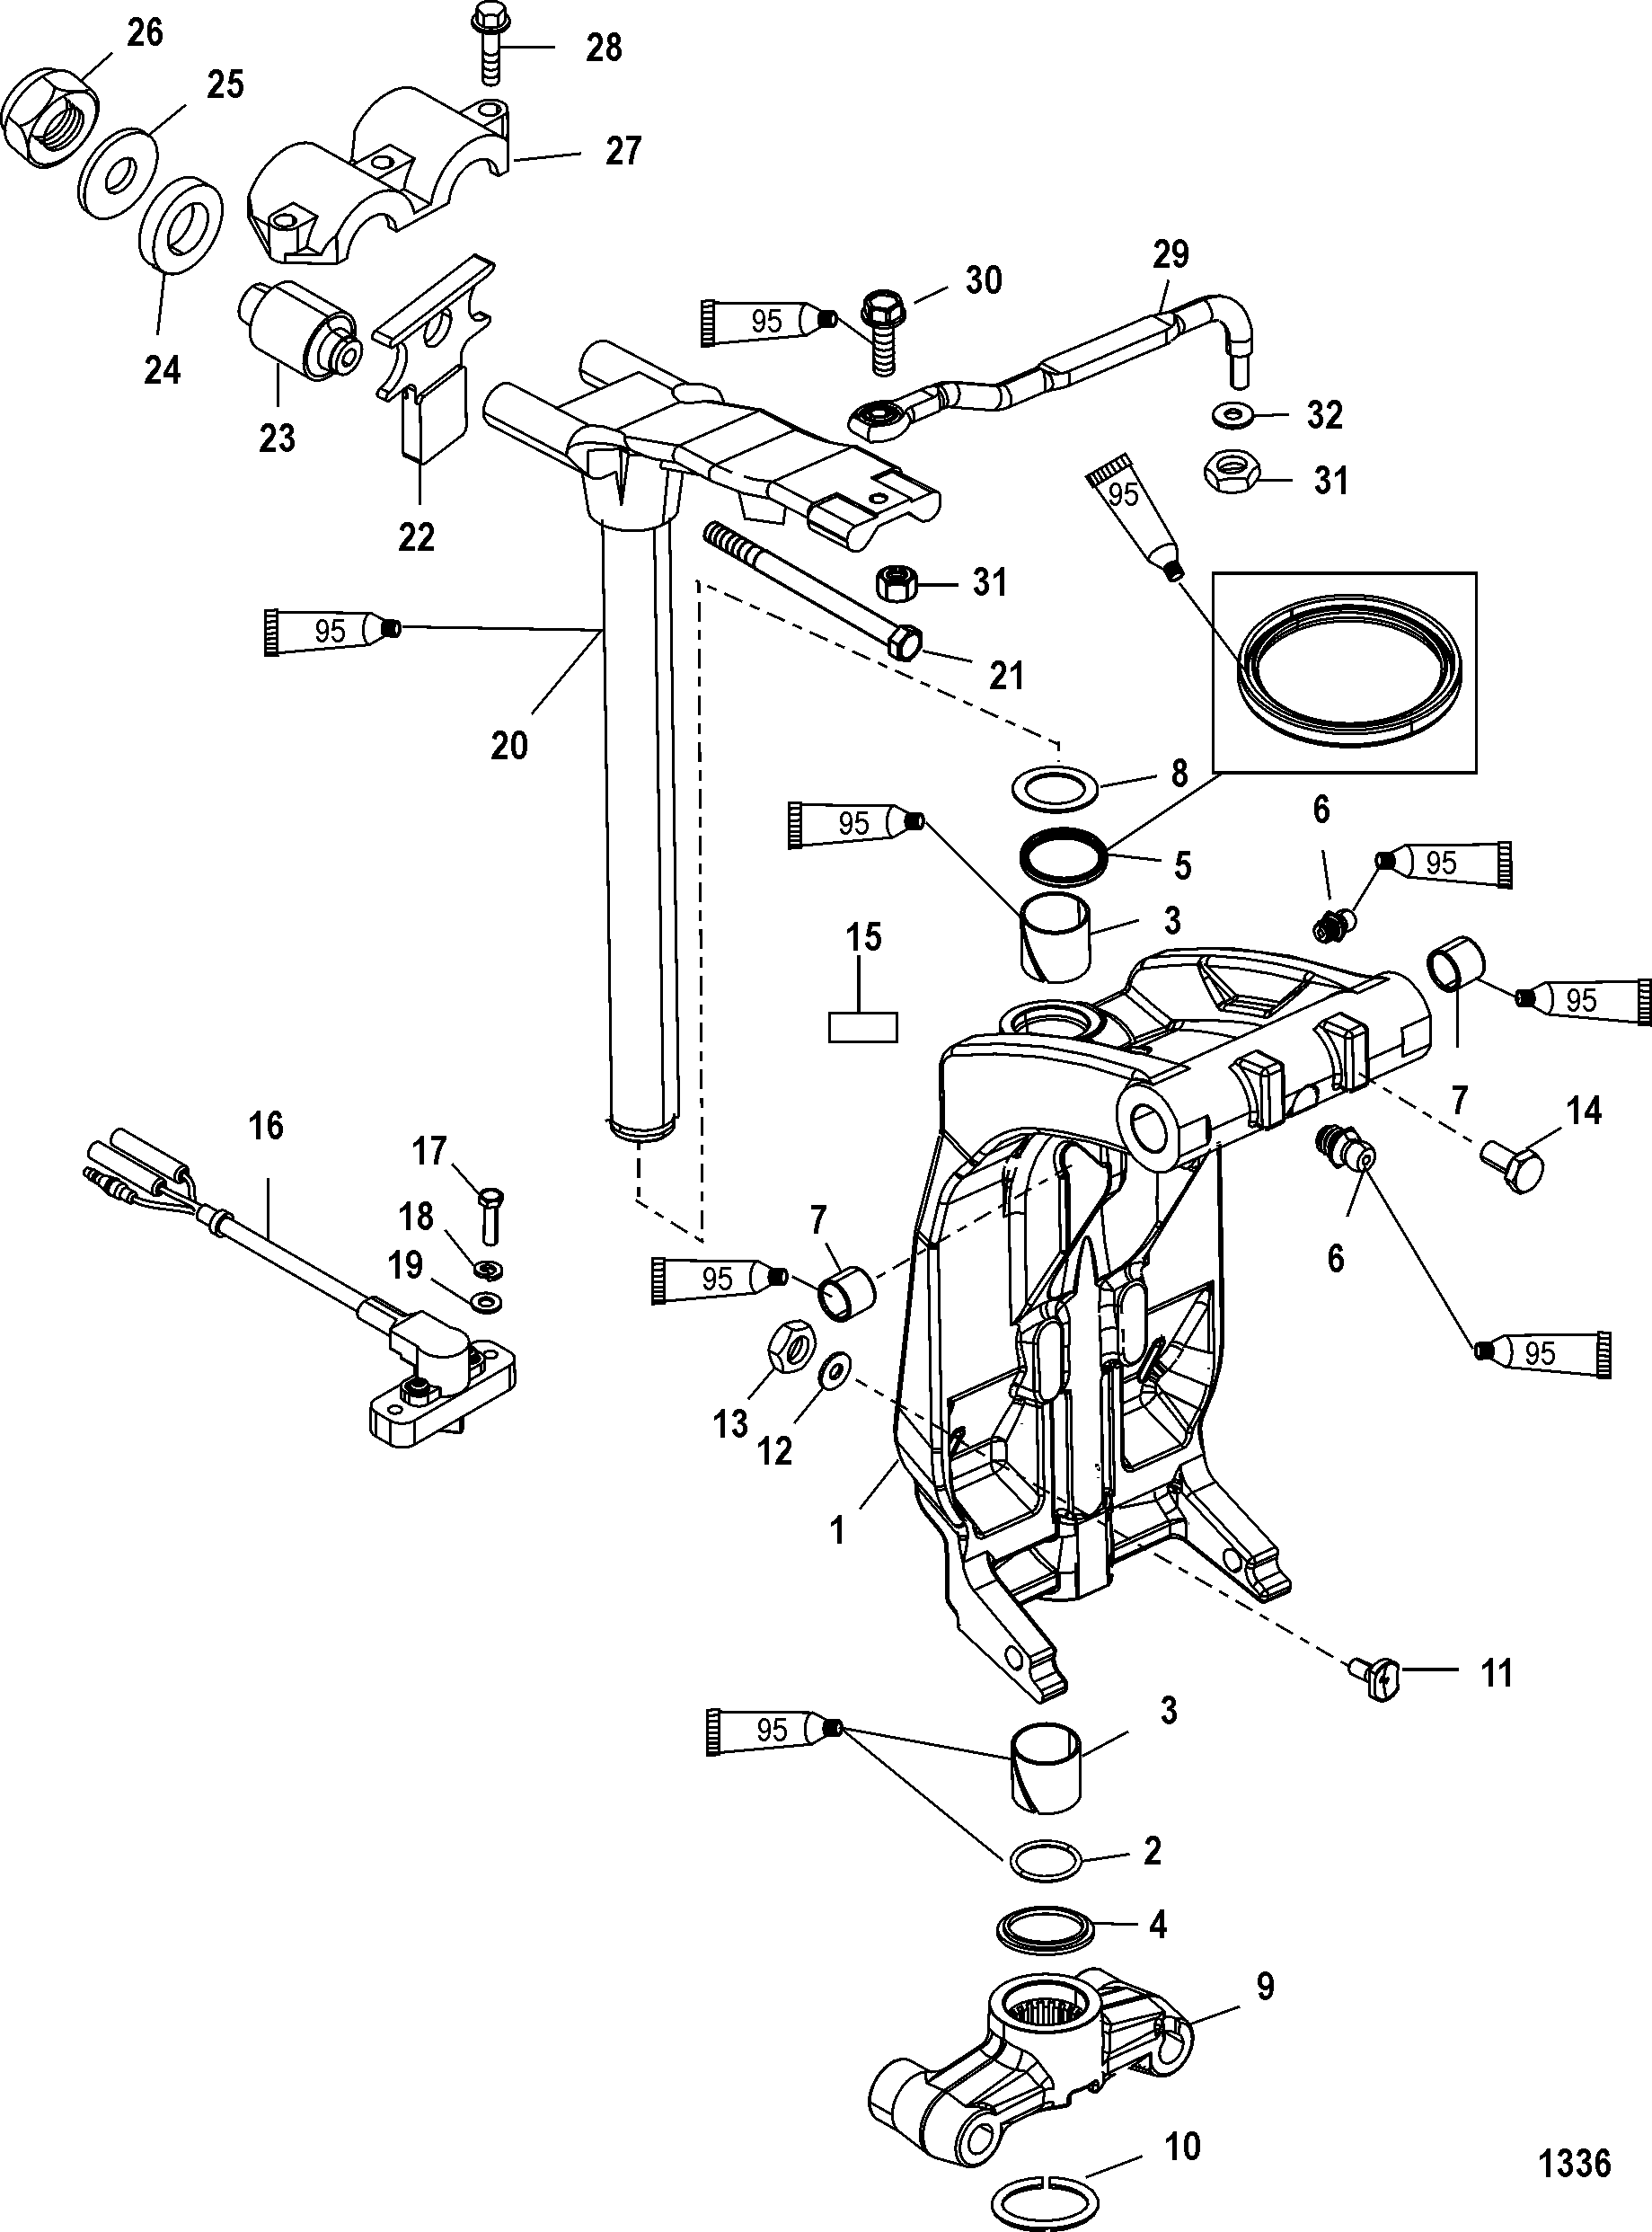 mercury optimax wiring diagram electrical software open source swivel bracket and steering arm for 200 v6 dfi